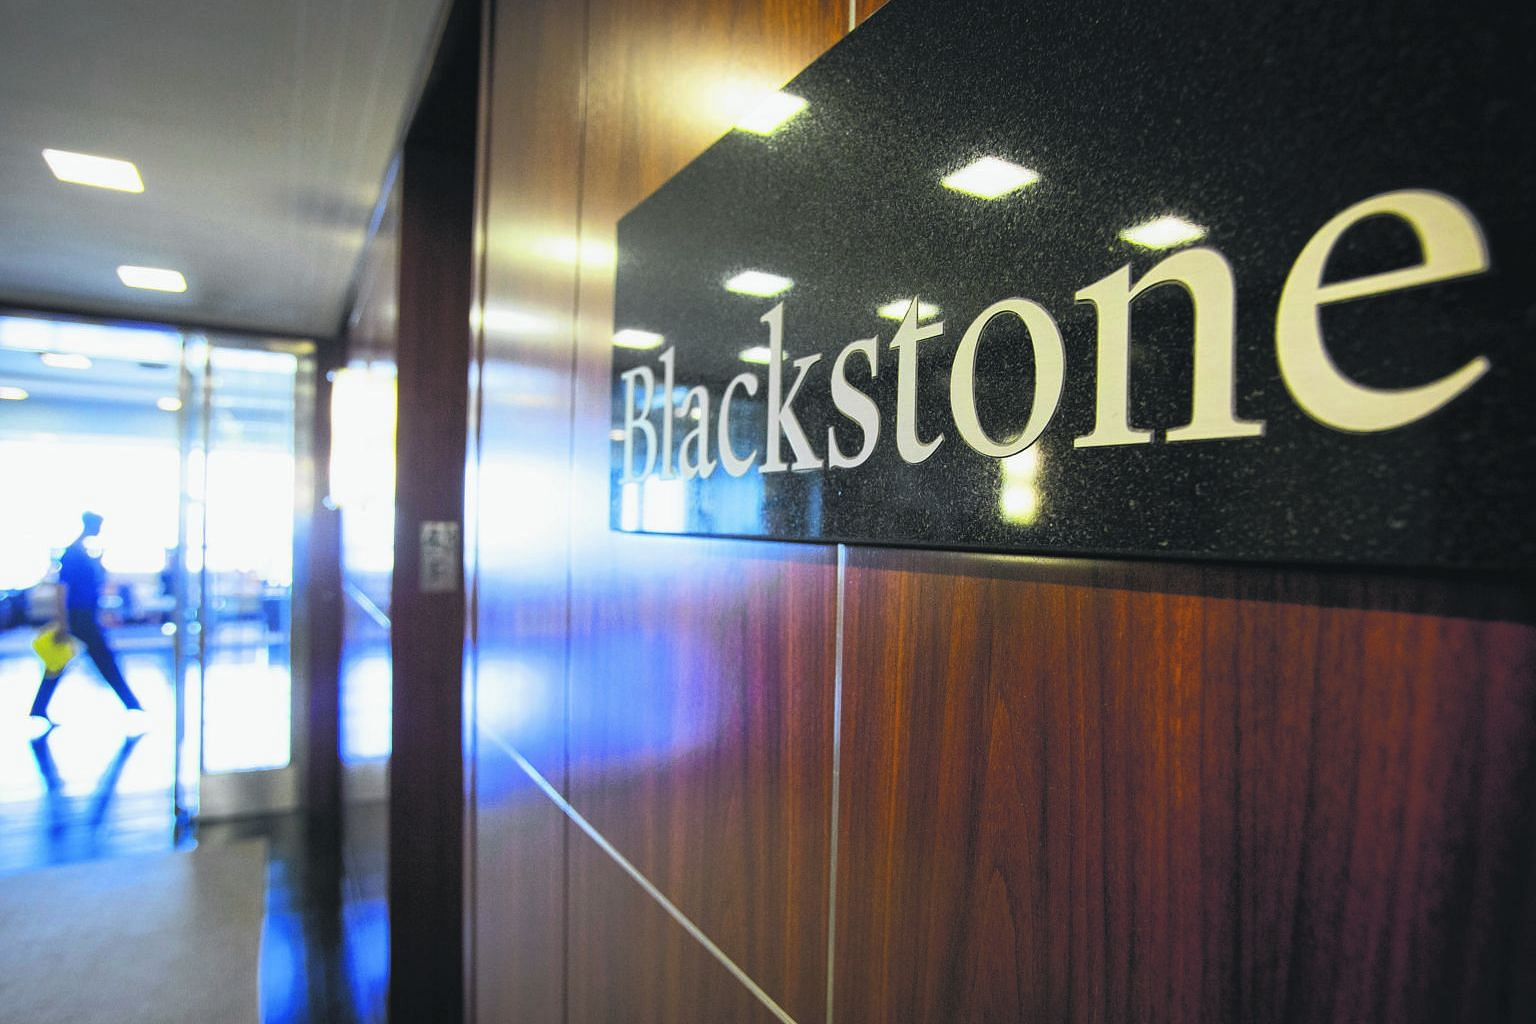 New York-based Blackstone says its acquisition of US logistics assets from Singapore-based GLP is the world's biggest private equity real estate deal.